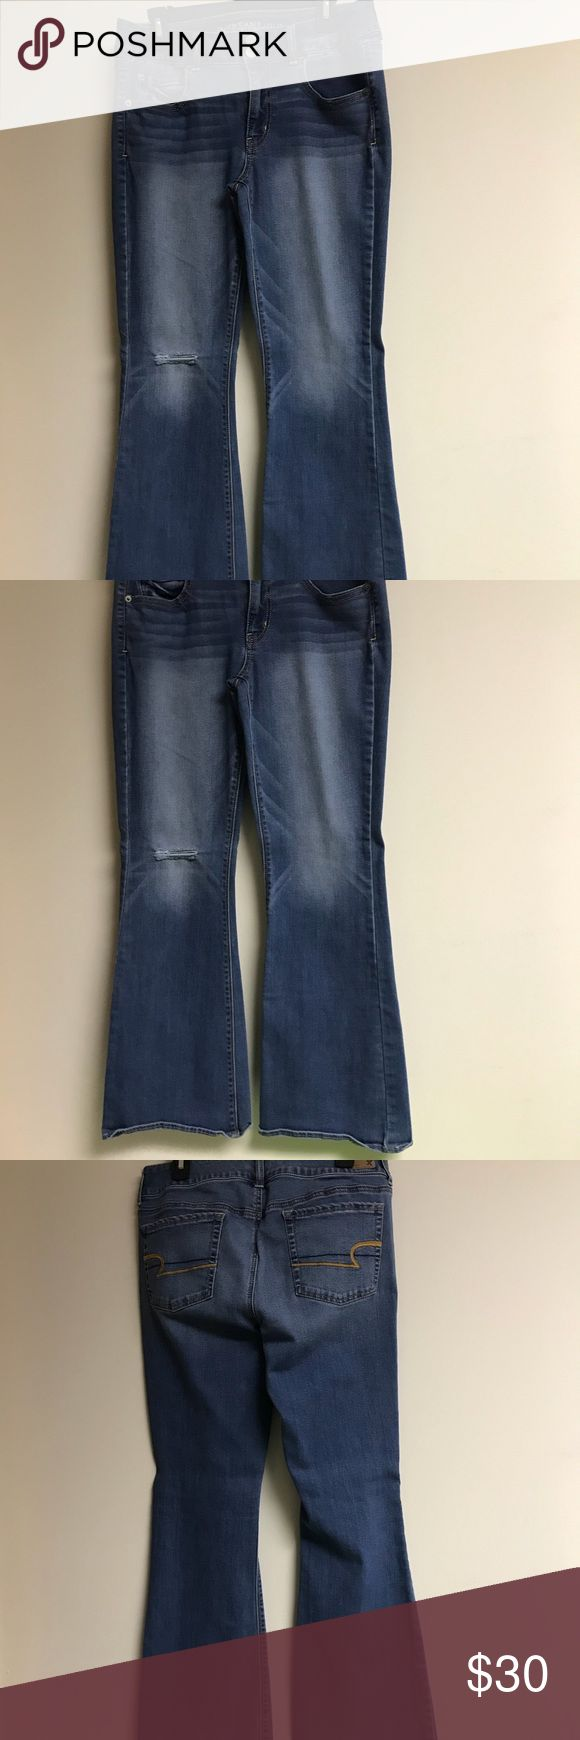 American Eagle Distressed Artist 12 Short Jeans Brand new without tags. Washed but never worn! Factory rip & distressing. Excellent condition. No holes, no stains, no flaws of any kind. Check my other items for bundles to save on shipping! Make a bundle of several items and only pay shipping once! Comes from a smoke-free home. I ship all items within 24 hours! I'll be listing over 100+ items today, so keep checking back for new listings! American Eagle Outfitters Jeans Flare & Wide Leg